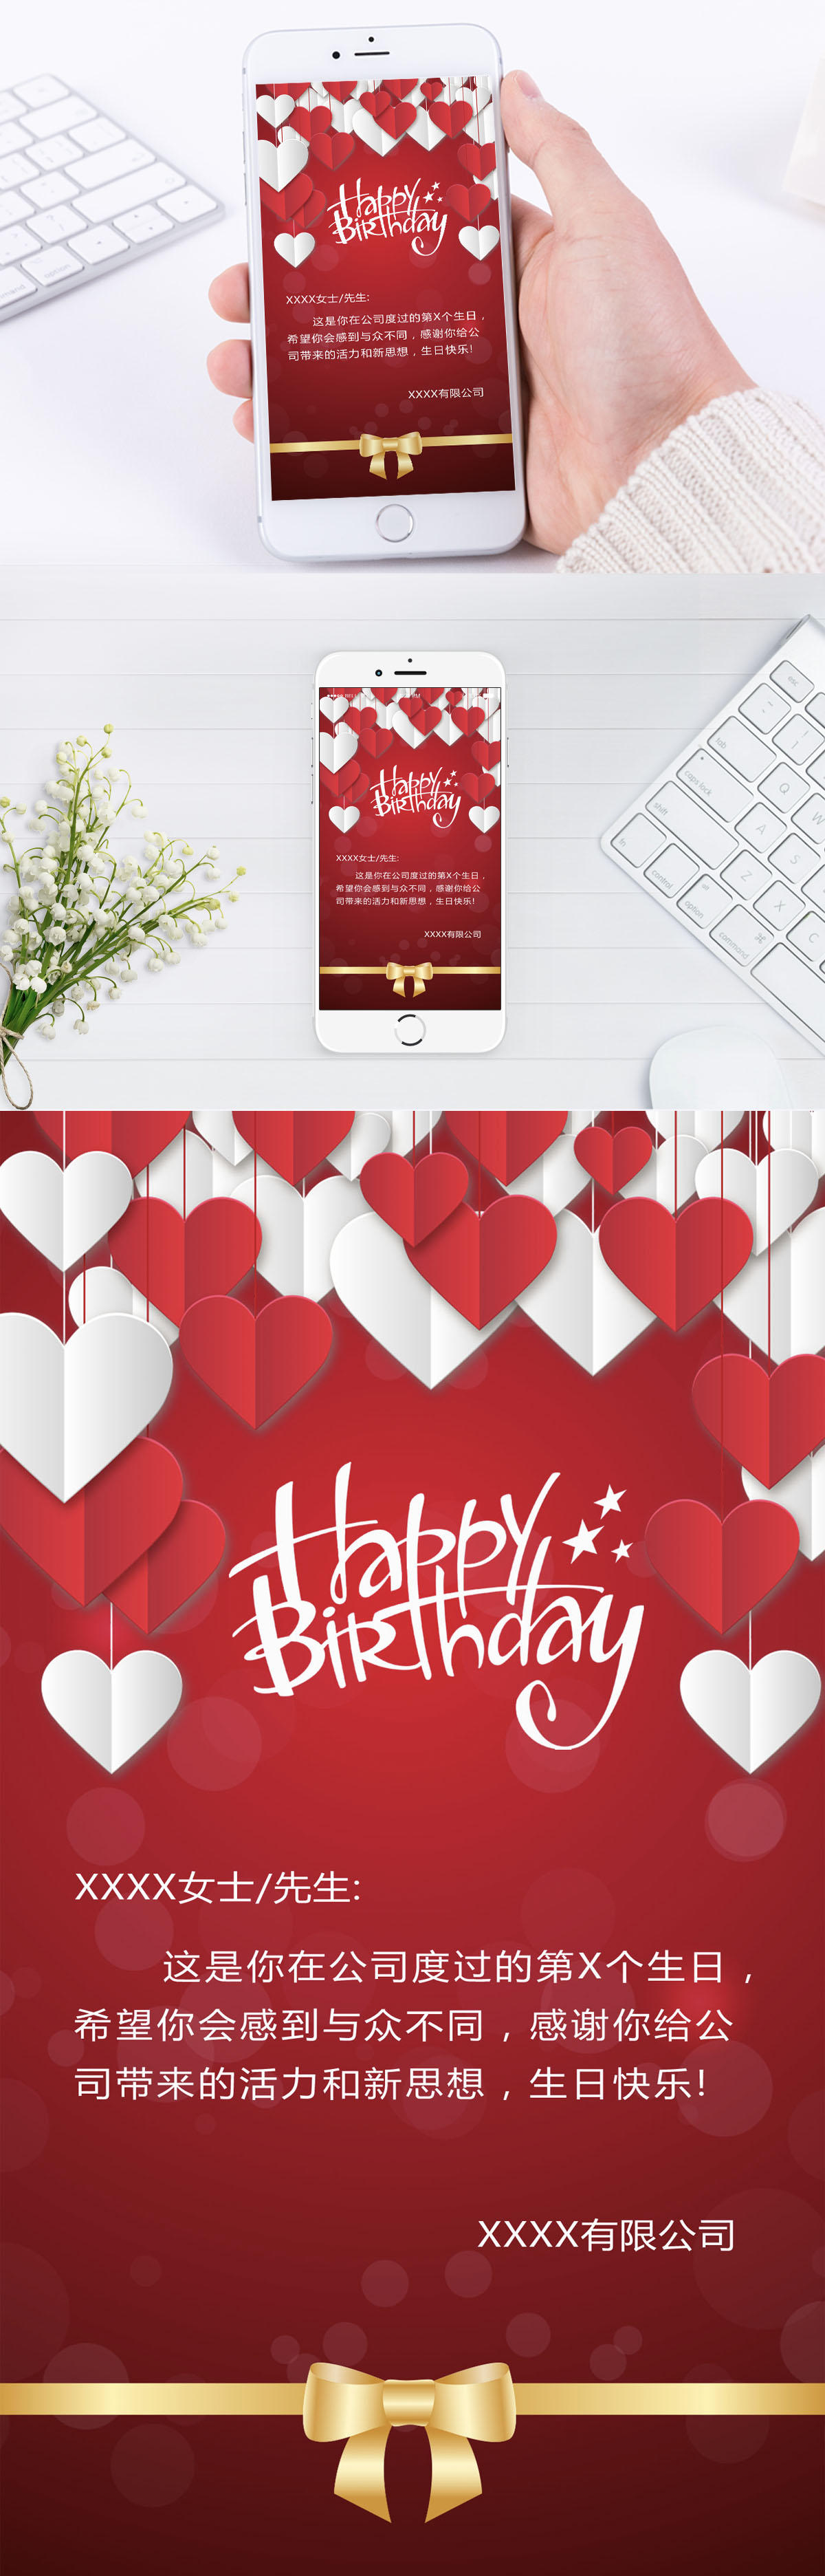 Electronic birthday cards imagepicture 400182800lovepik free electronic birthday cards m4hsunfo